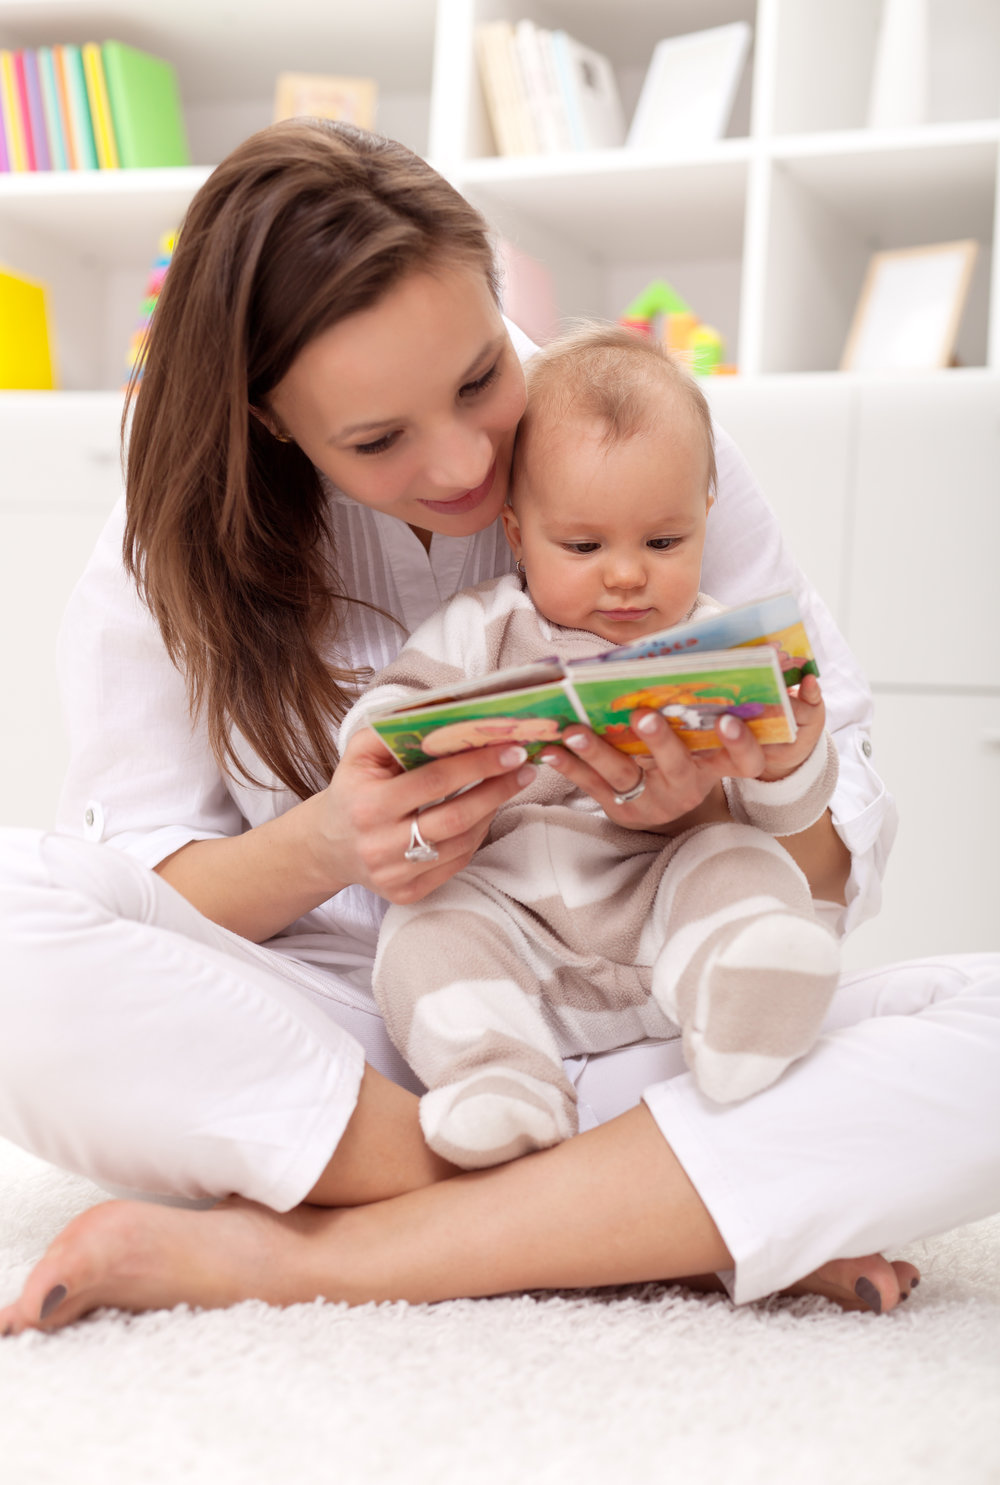 in-mother-reading-to-baby.jpg